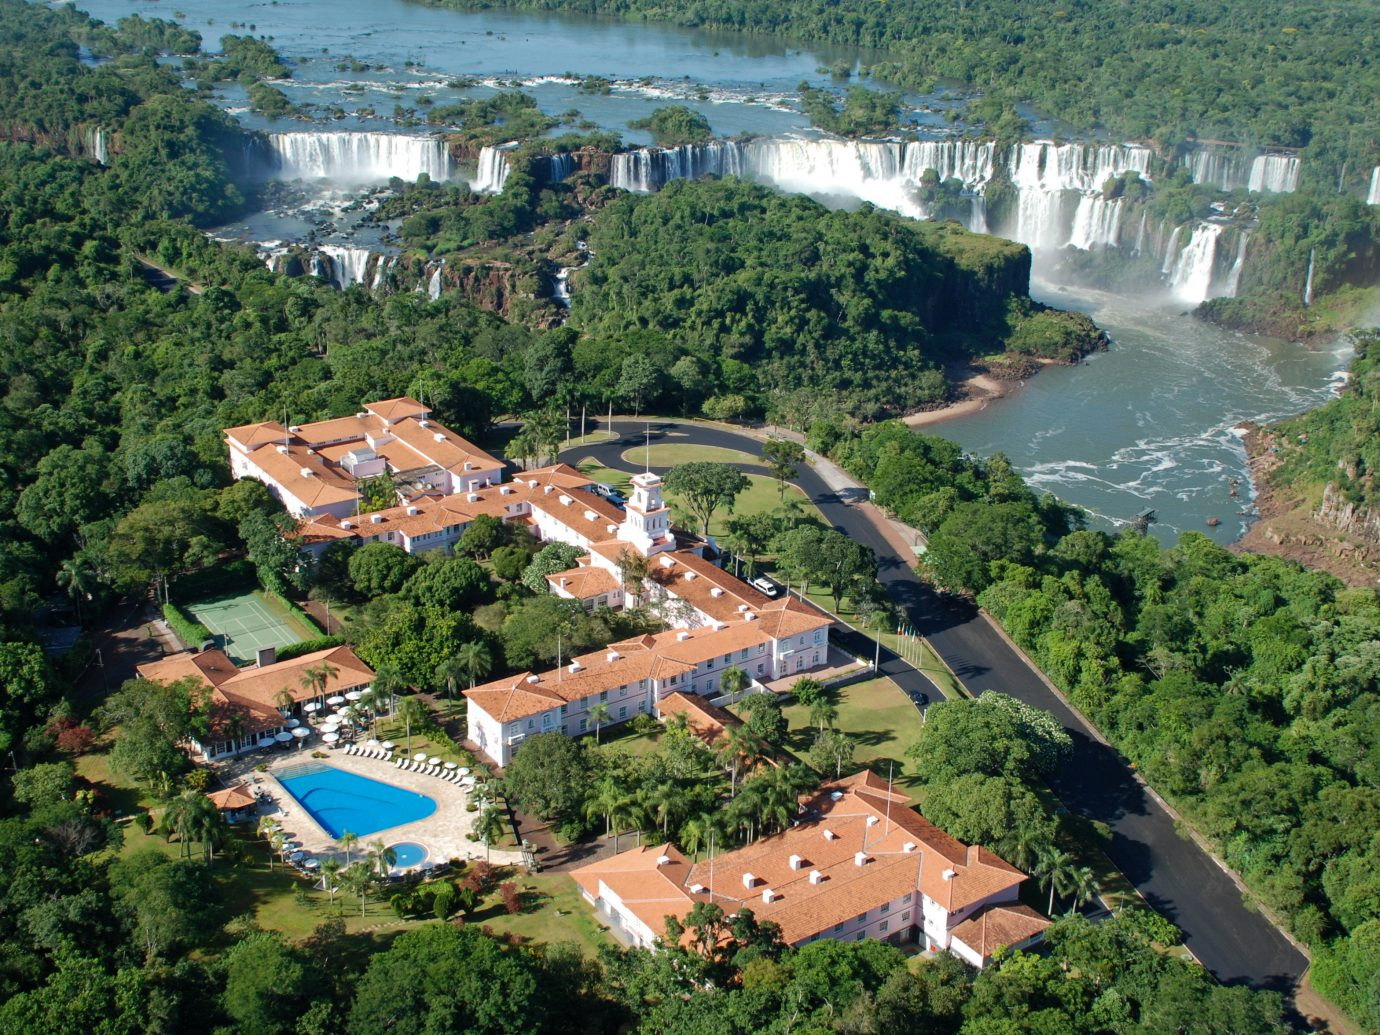 Aerial View Of Belmond Hotel Das Cataratas In Brazil